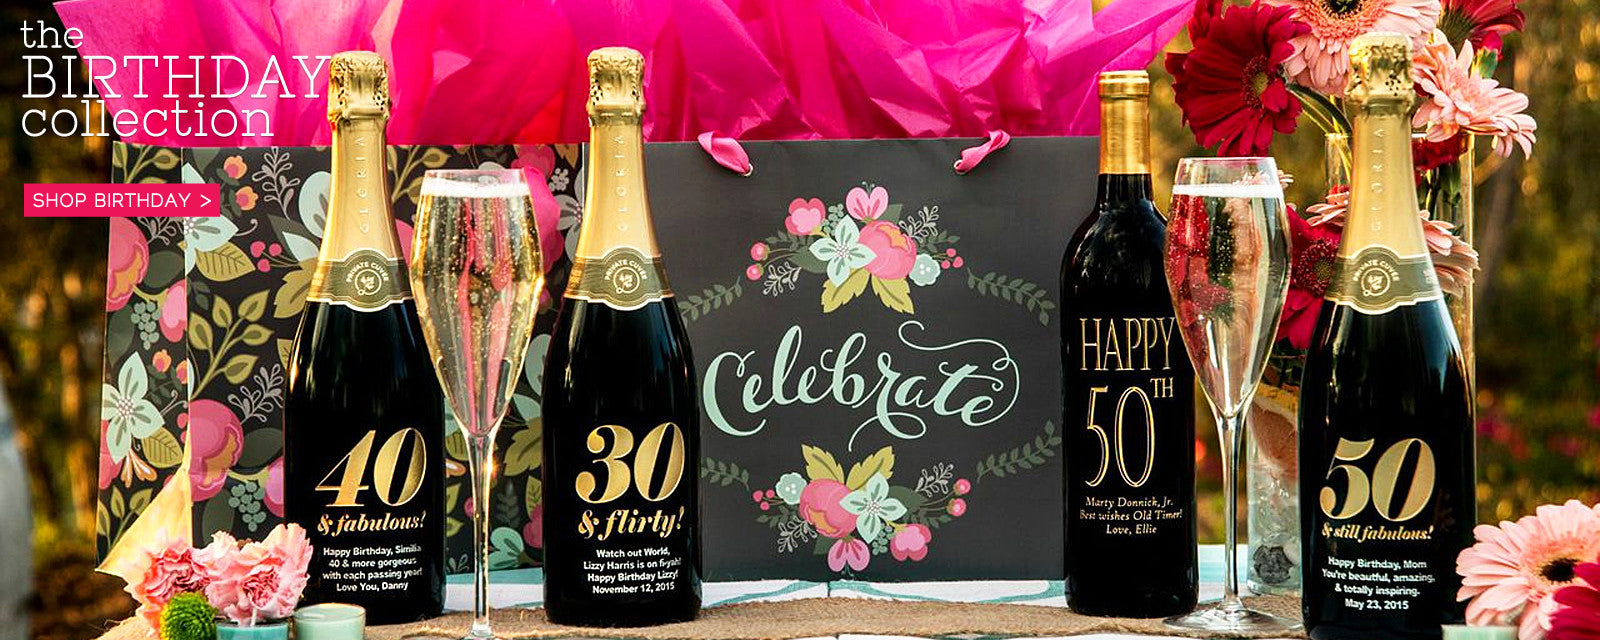 Shop Birthday Etched Wines